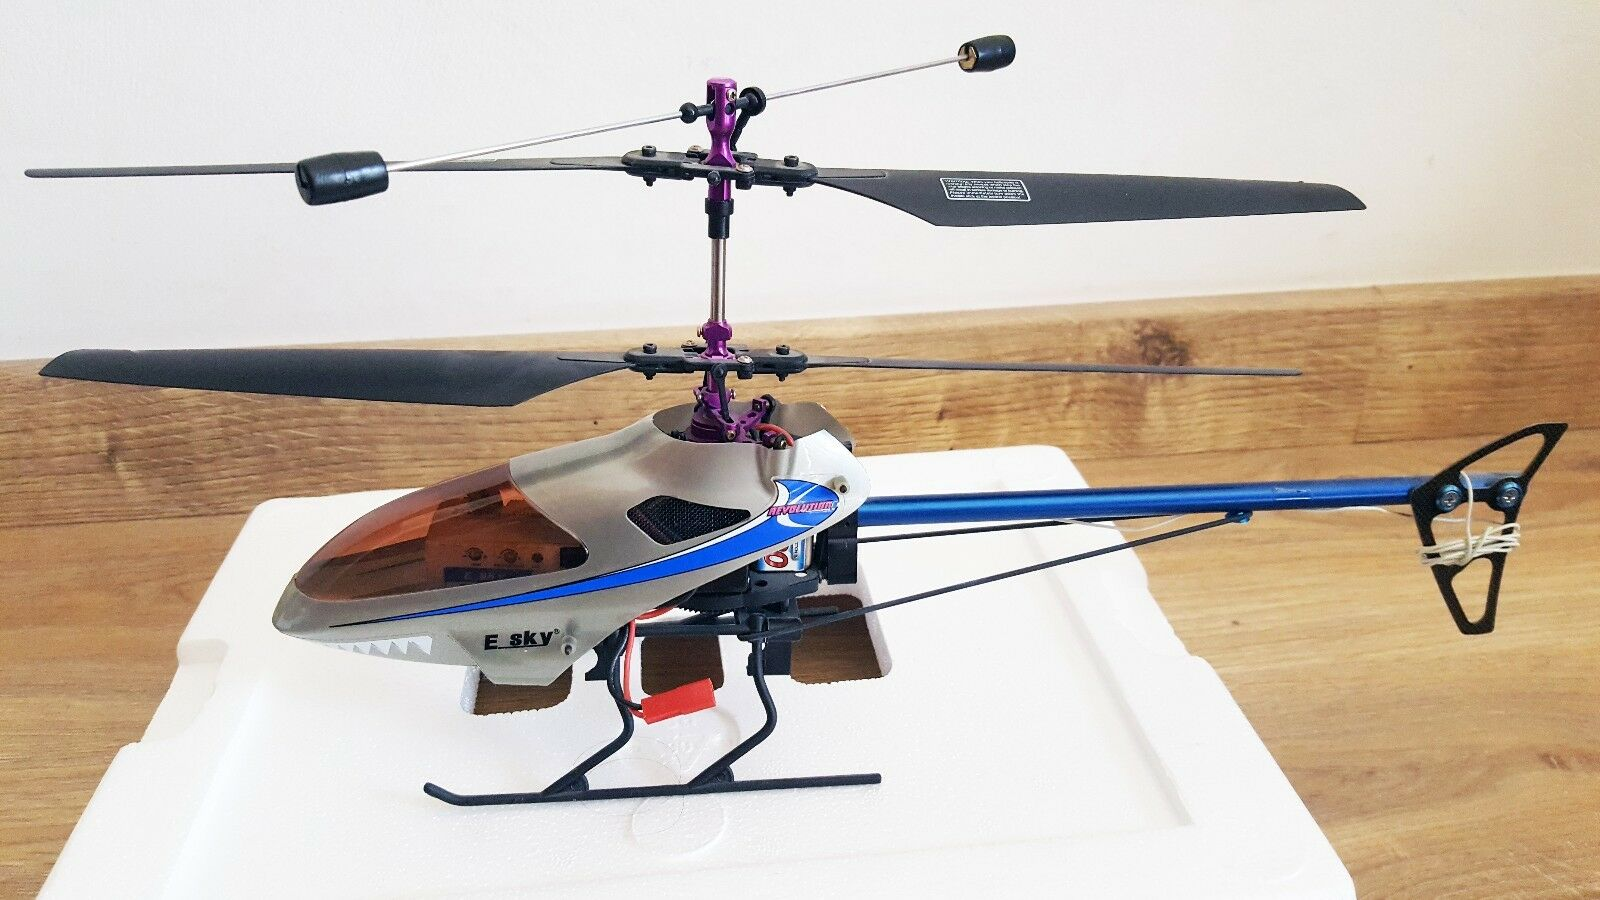 Esky Lama V4 4 CH RC Helicopter with Transmitter (Shipped from Europe)